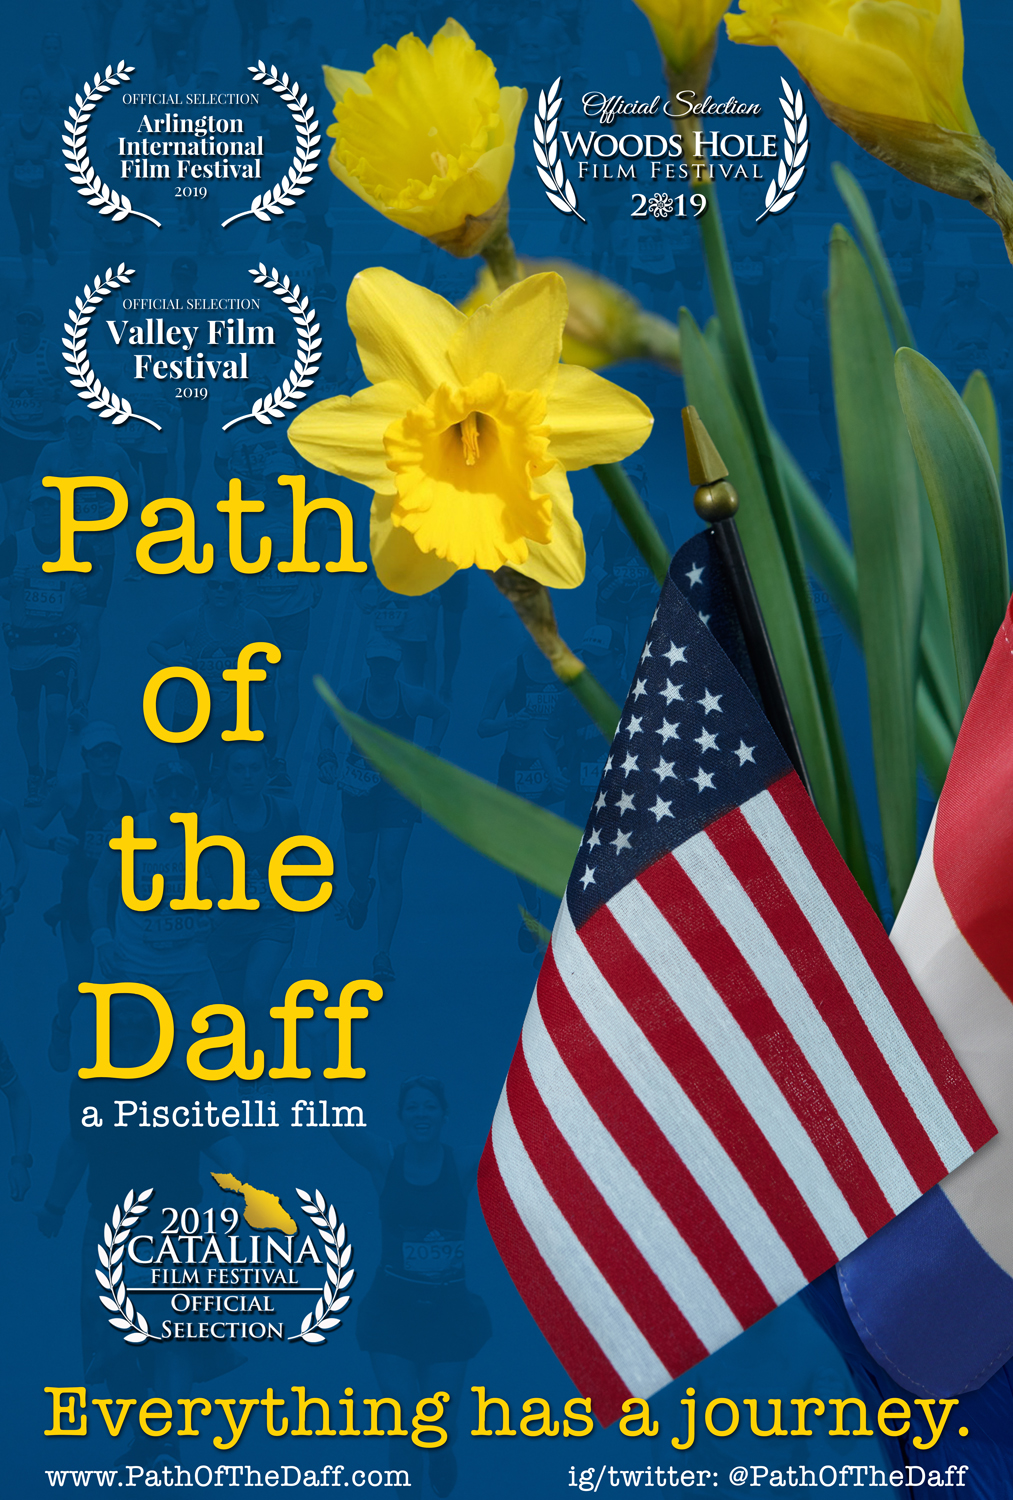 Paths Of The Daff posterF3_edited-2 (1).jpg